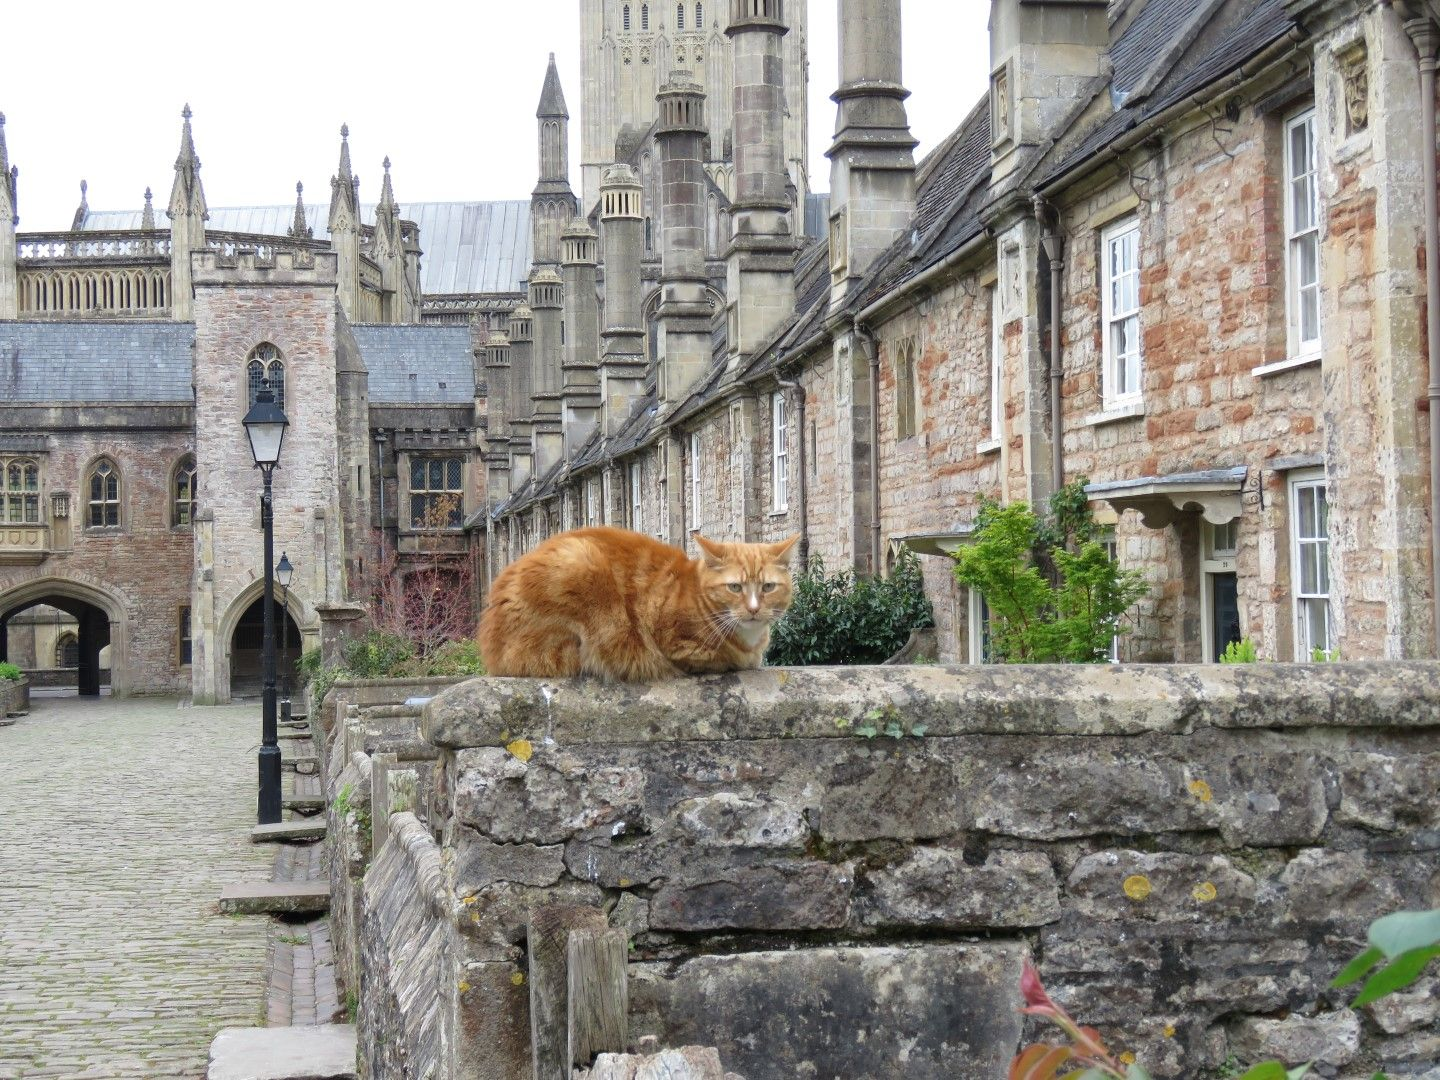 The Cambrians cats of the U.K. image by Alex Brownstein